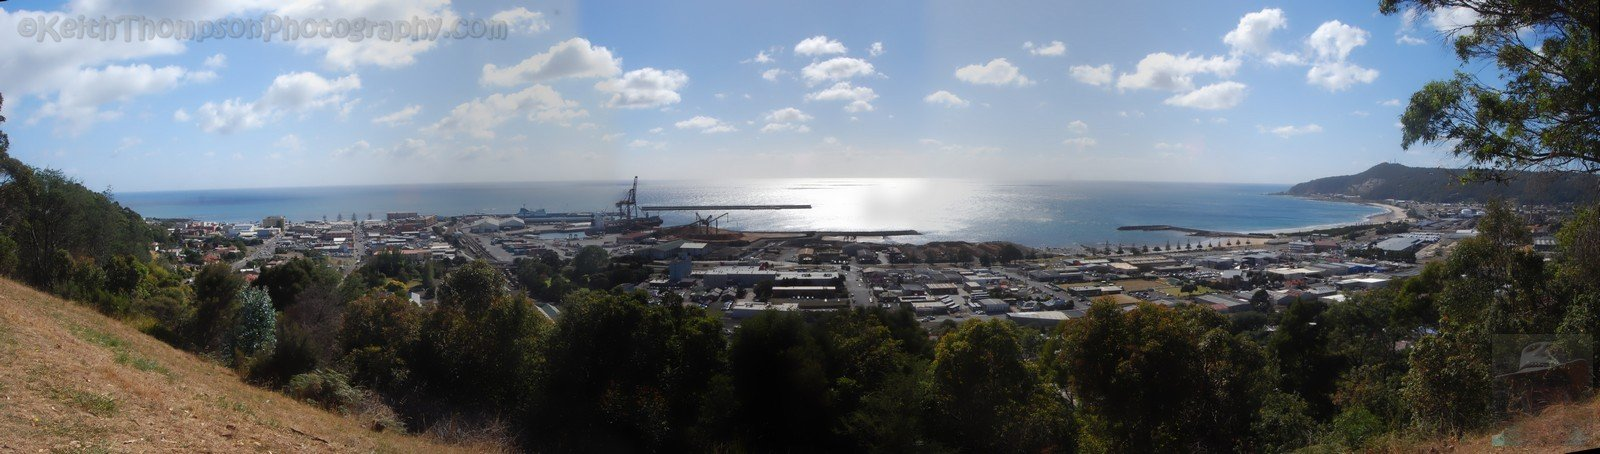 Burnie from Lookout